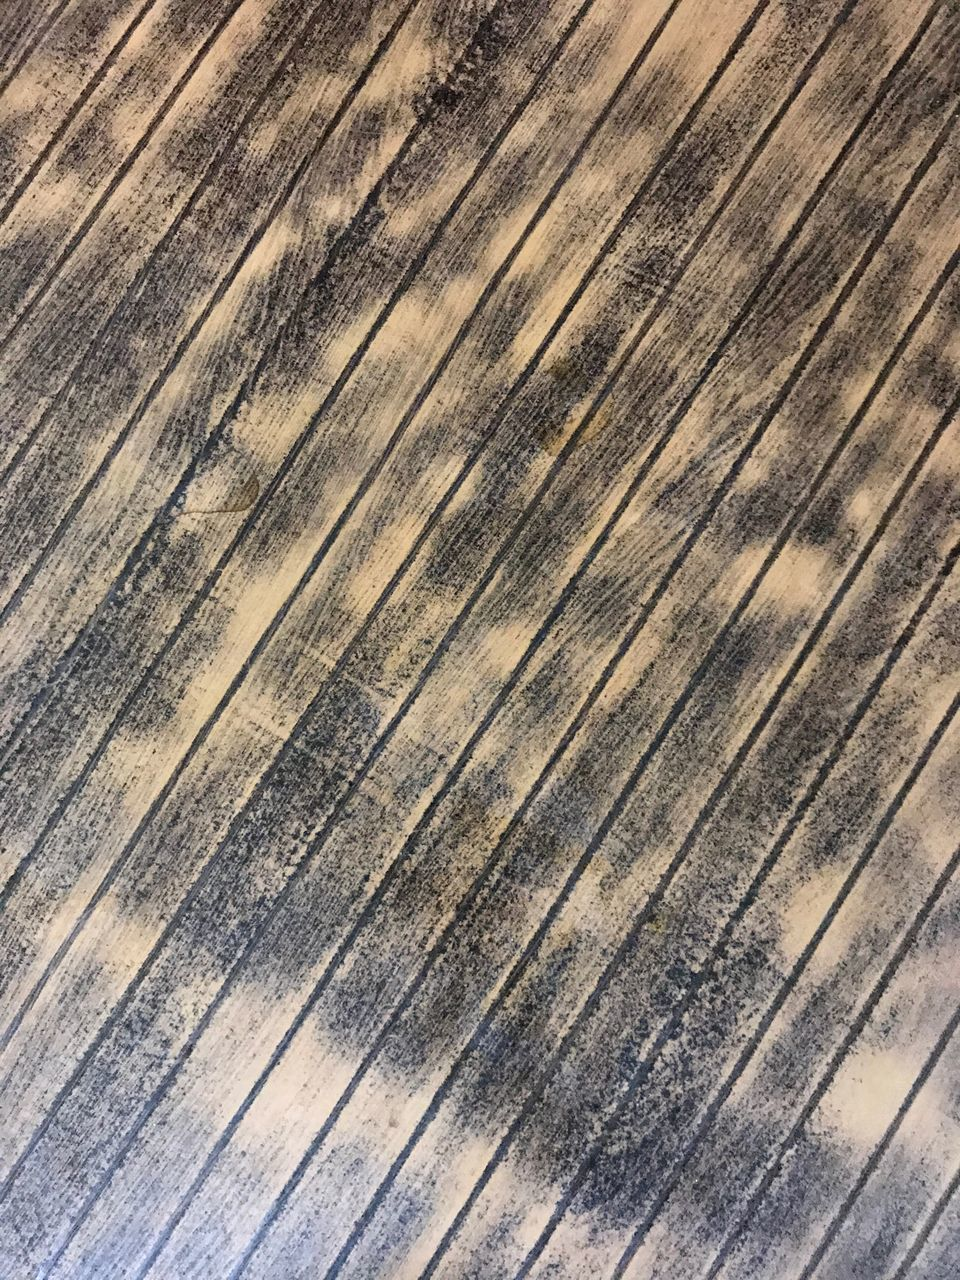 backgrounds, wood - material, pattern, striped, textured, retro styled, dirty, old-fashioned, full frame, wood grain, weathered, abstract, nature, antique, brown, close-up, no people, hardwood, outdoors, wallpaper, rustic, photograph, wood paneling, day